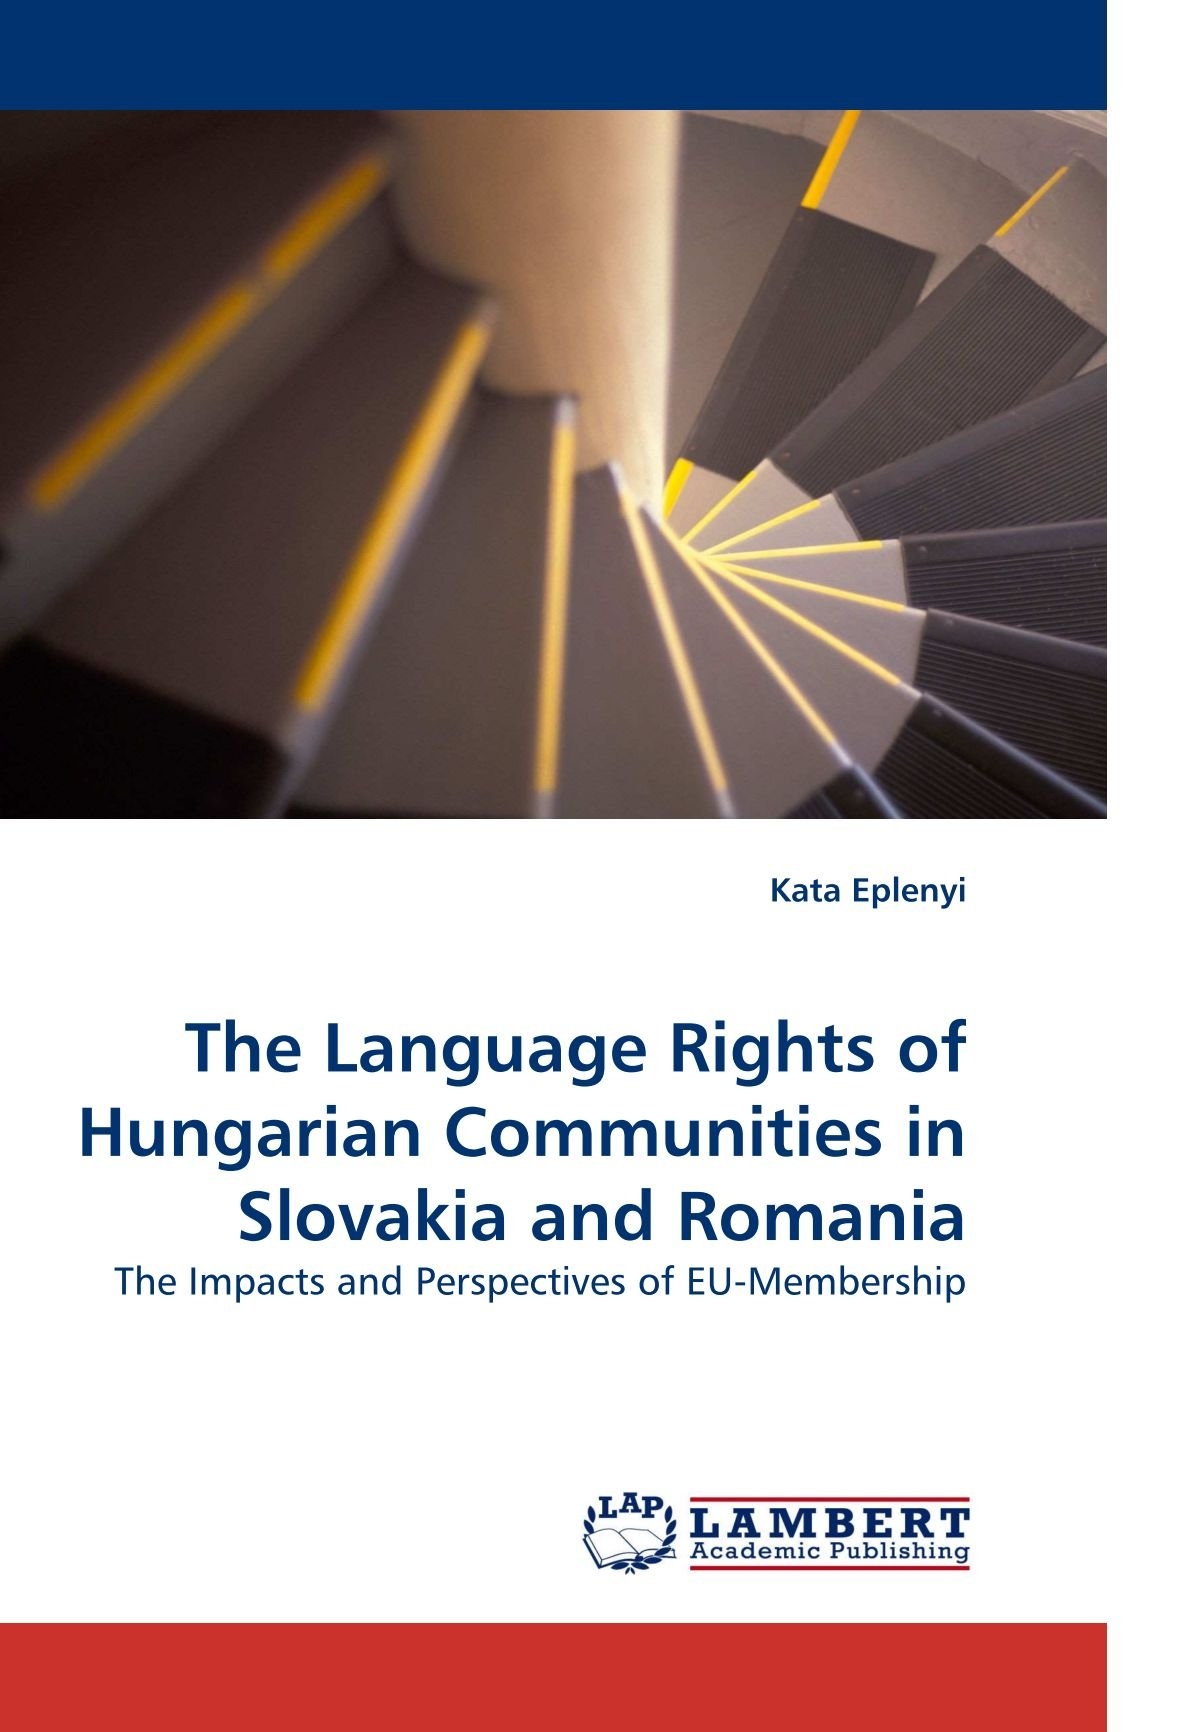 The Language Rights of Hungarian Communities in Slovakia and Romania: The Impacts and Perspectives of EU-Membership by Eplenyi Kata